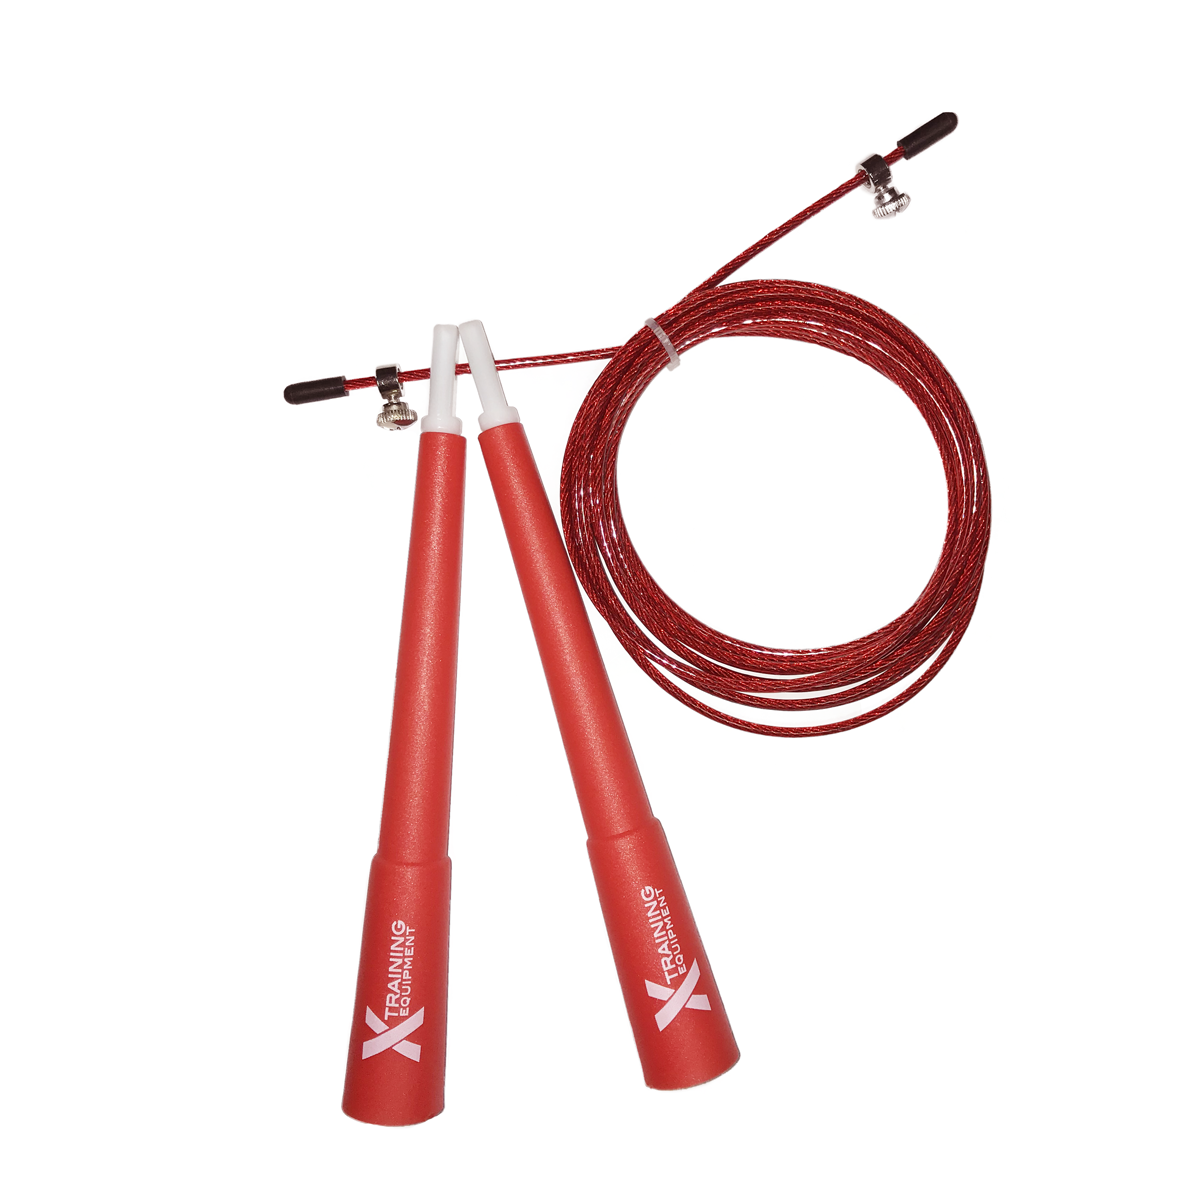 Cable Speed Rope - Lightweight Jump Rope